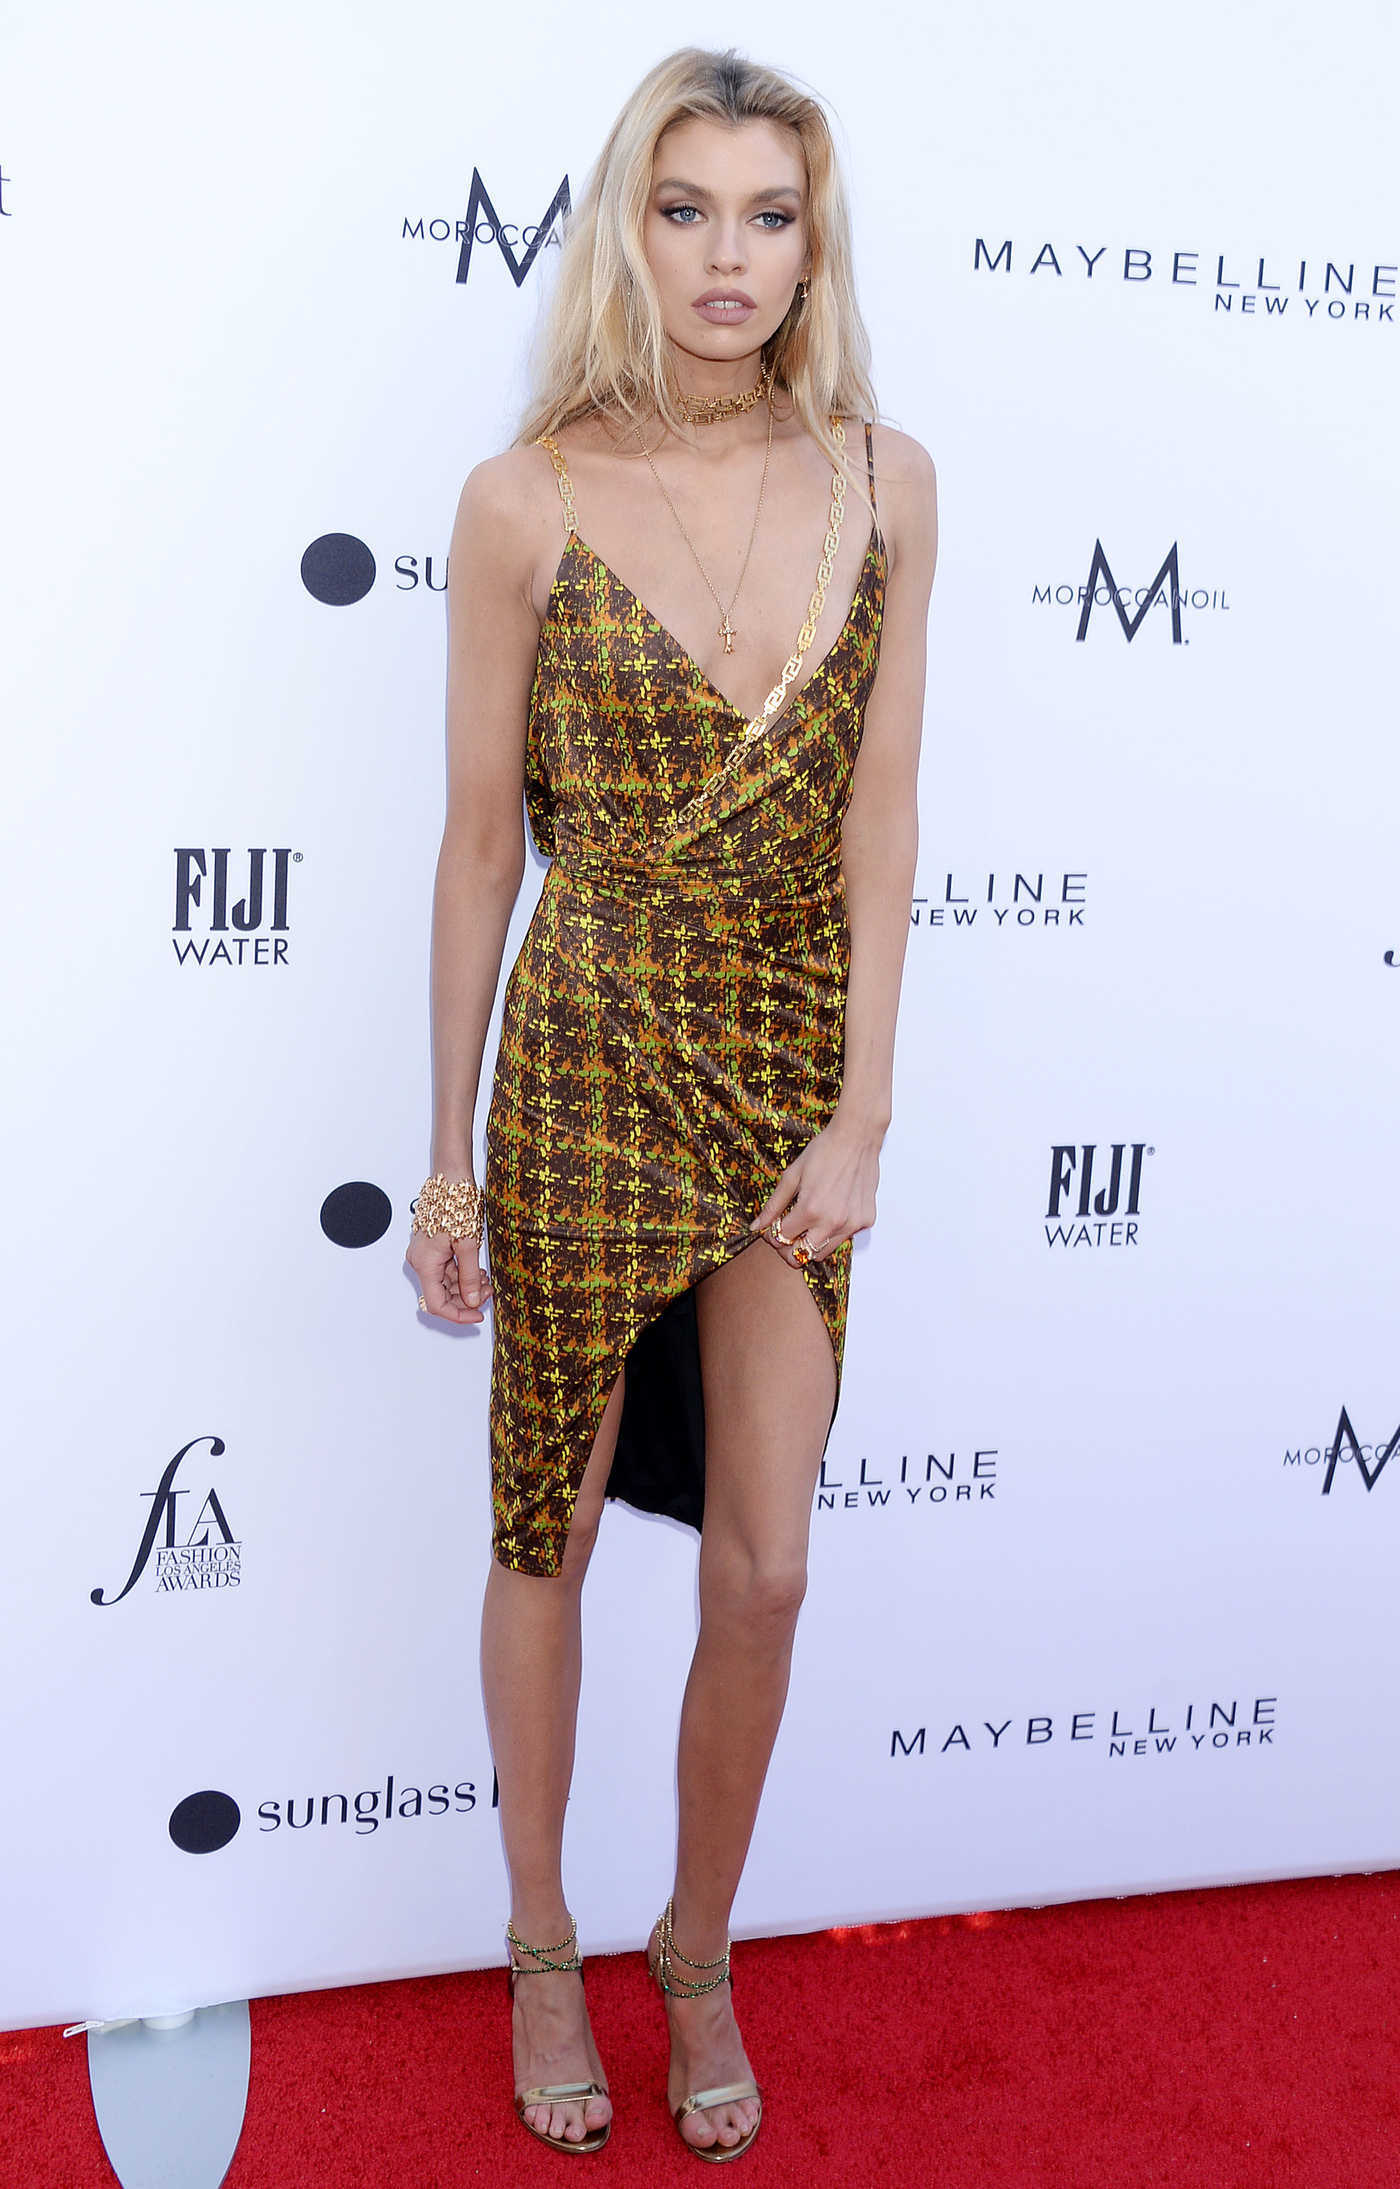 Stella Maxwell Attends The Daily Front Row Fashion Awards at The Beverly Hills Hotel in Los Angeles 03/17/2019